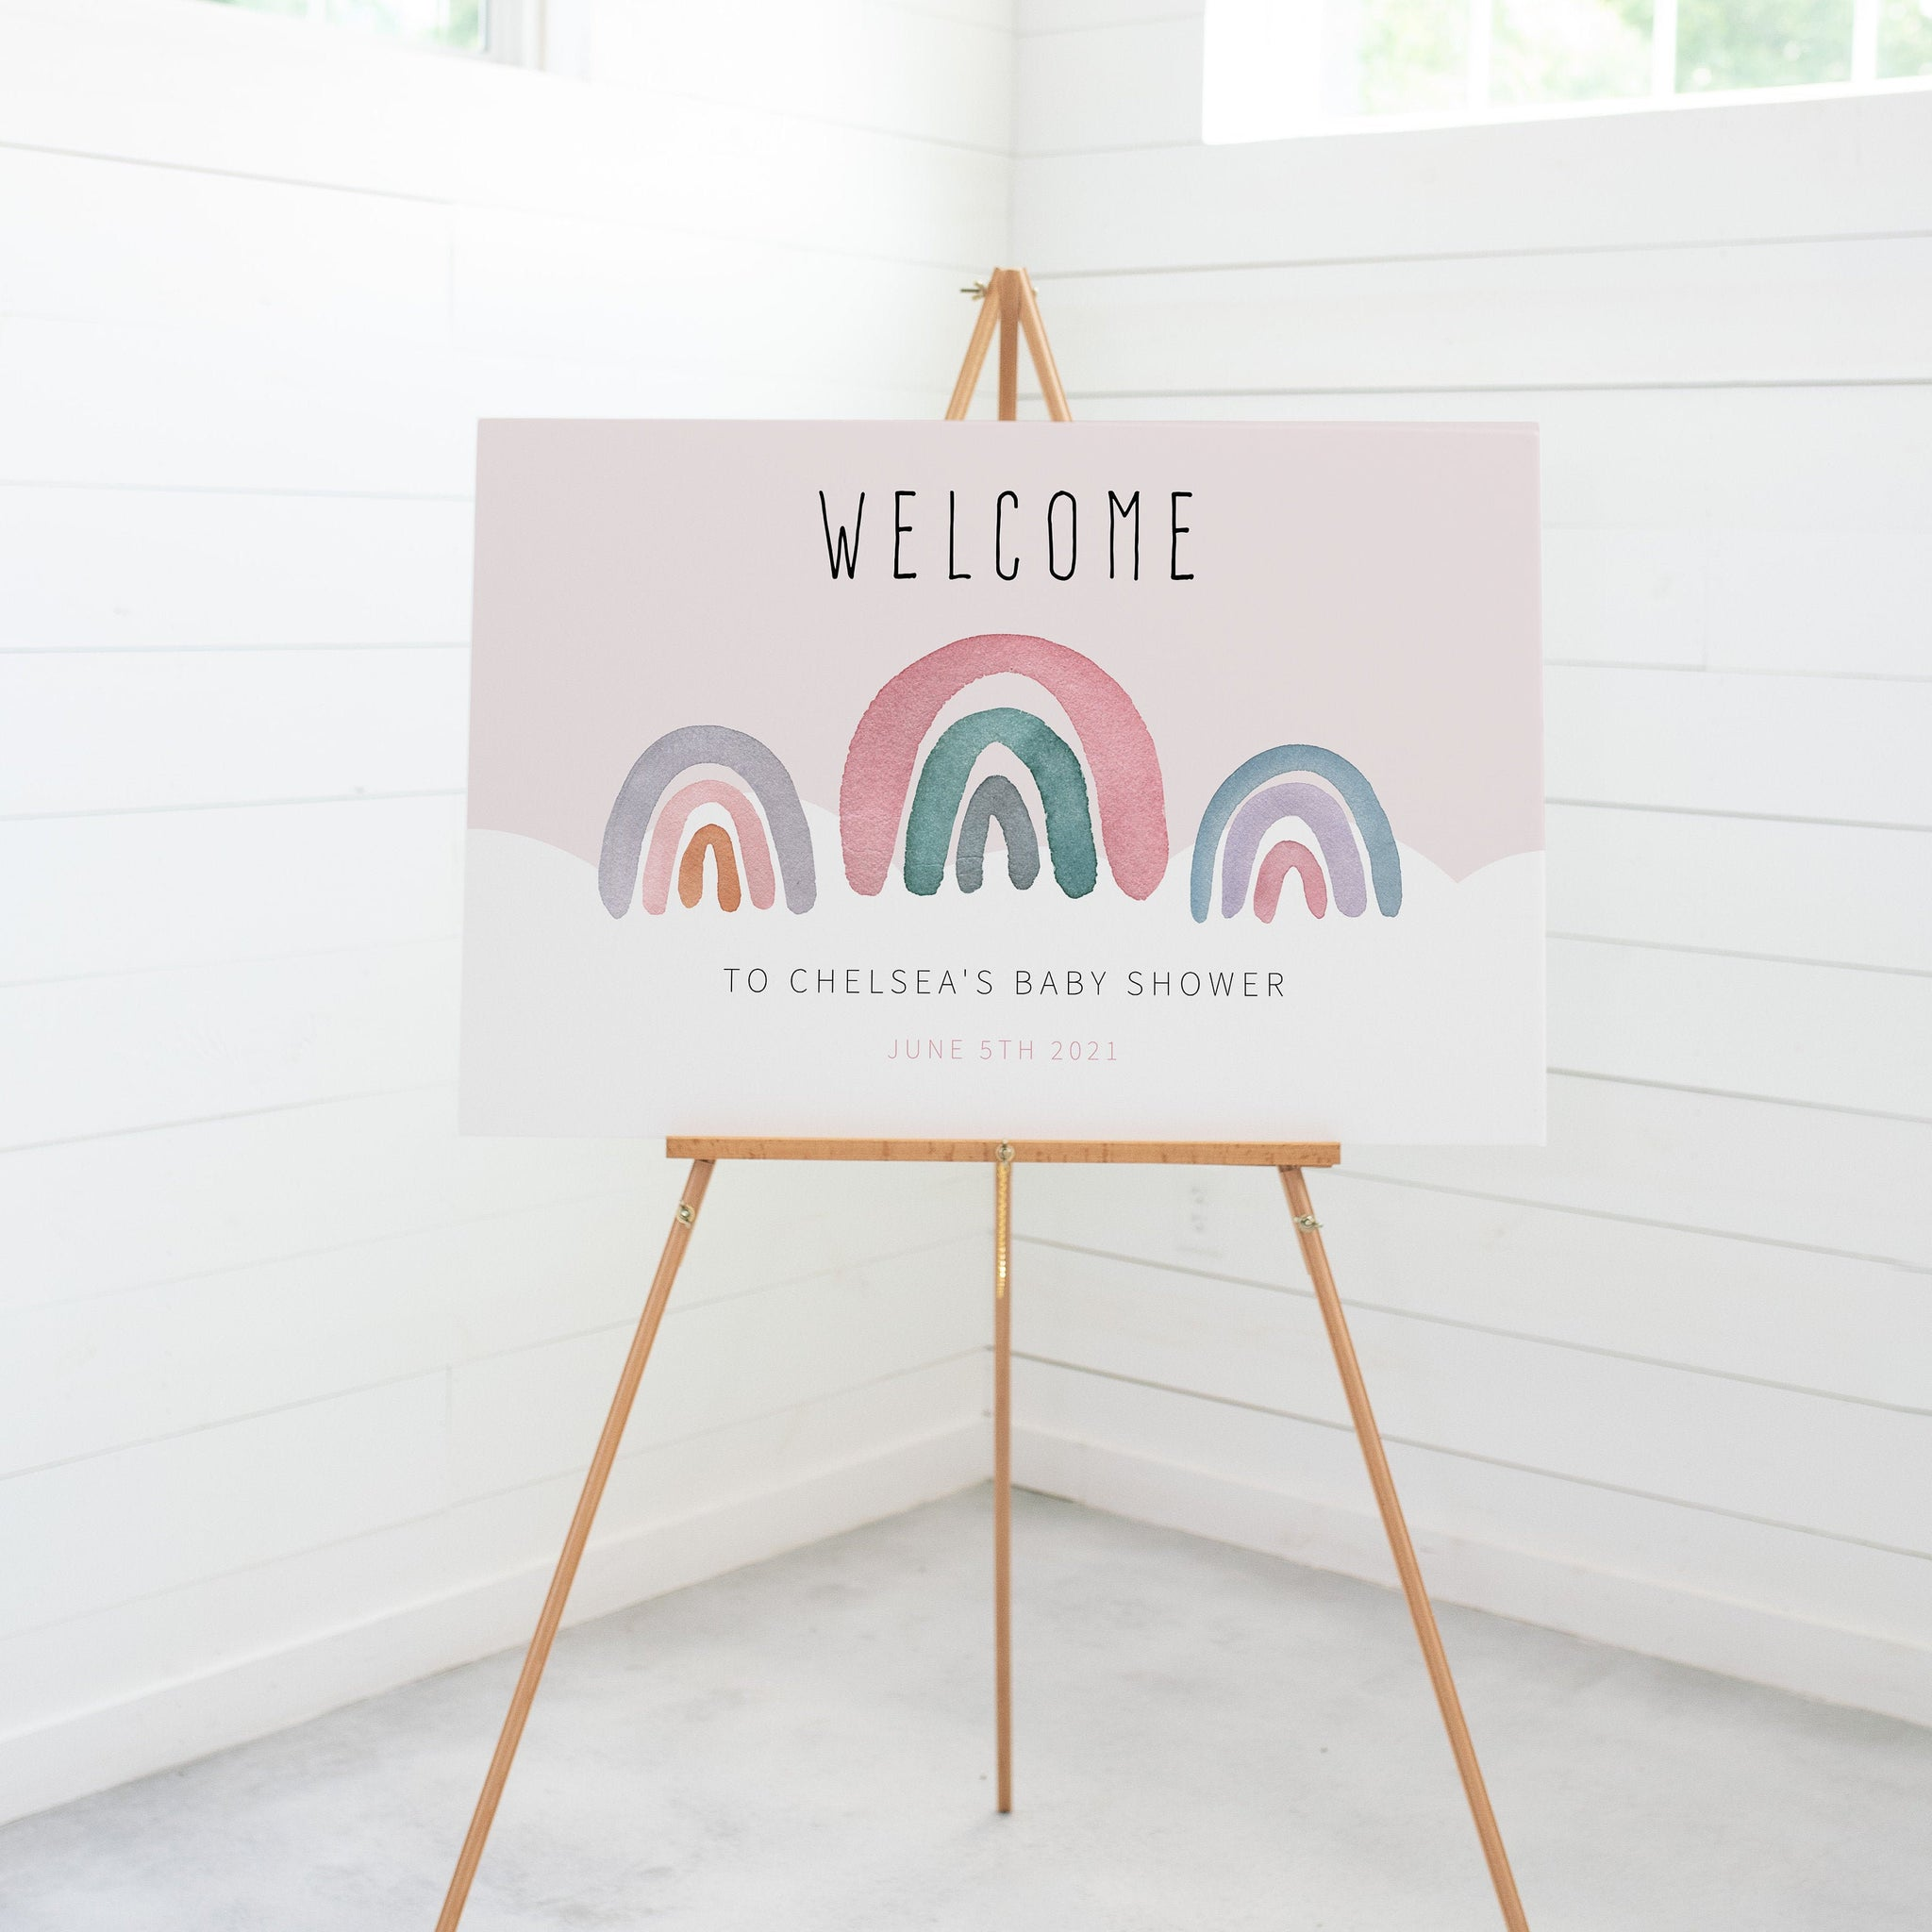 Boho Rainbow Baby Shower Welcome Sign Template, Printable Rainbow Baby Shower Decorations, Large Rainbow Welcome Sign, DIGITAL DOWNLOAD R100